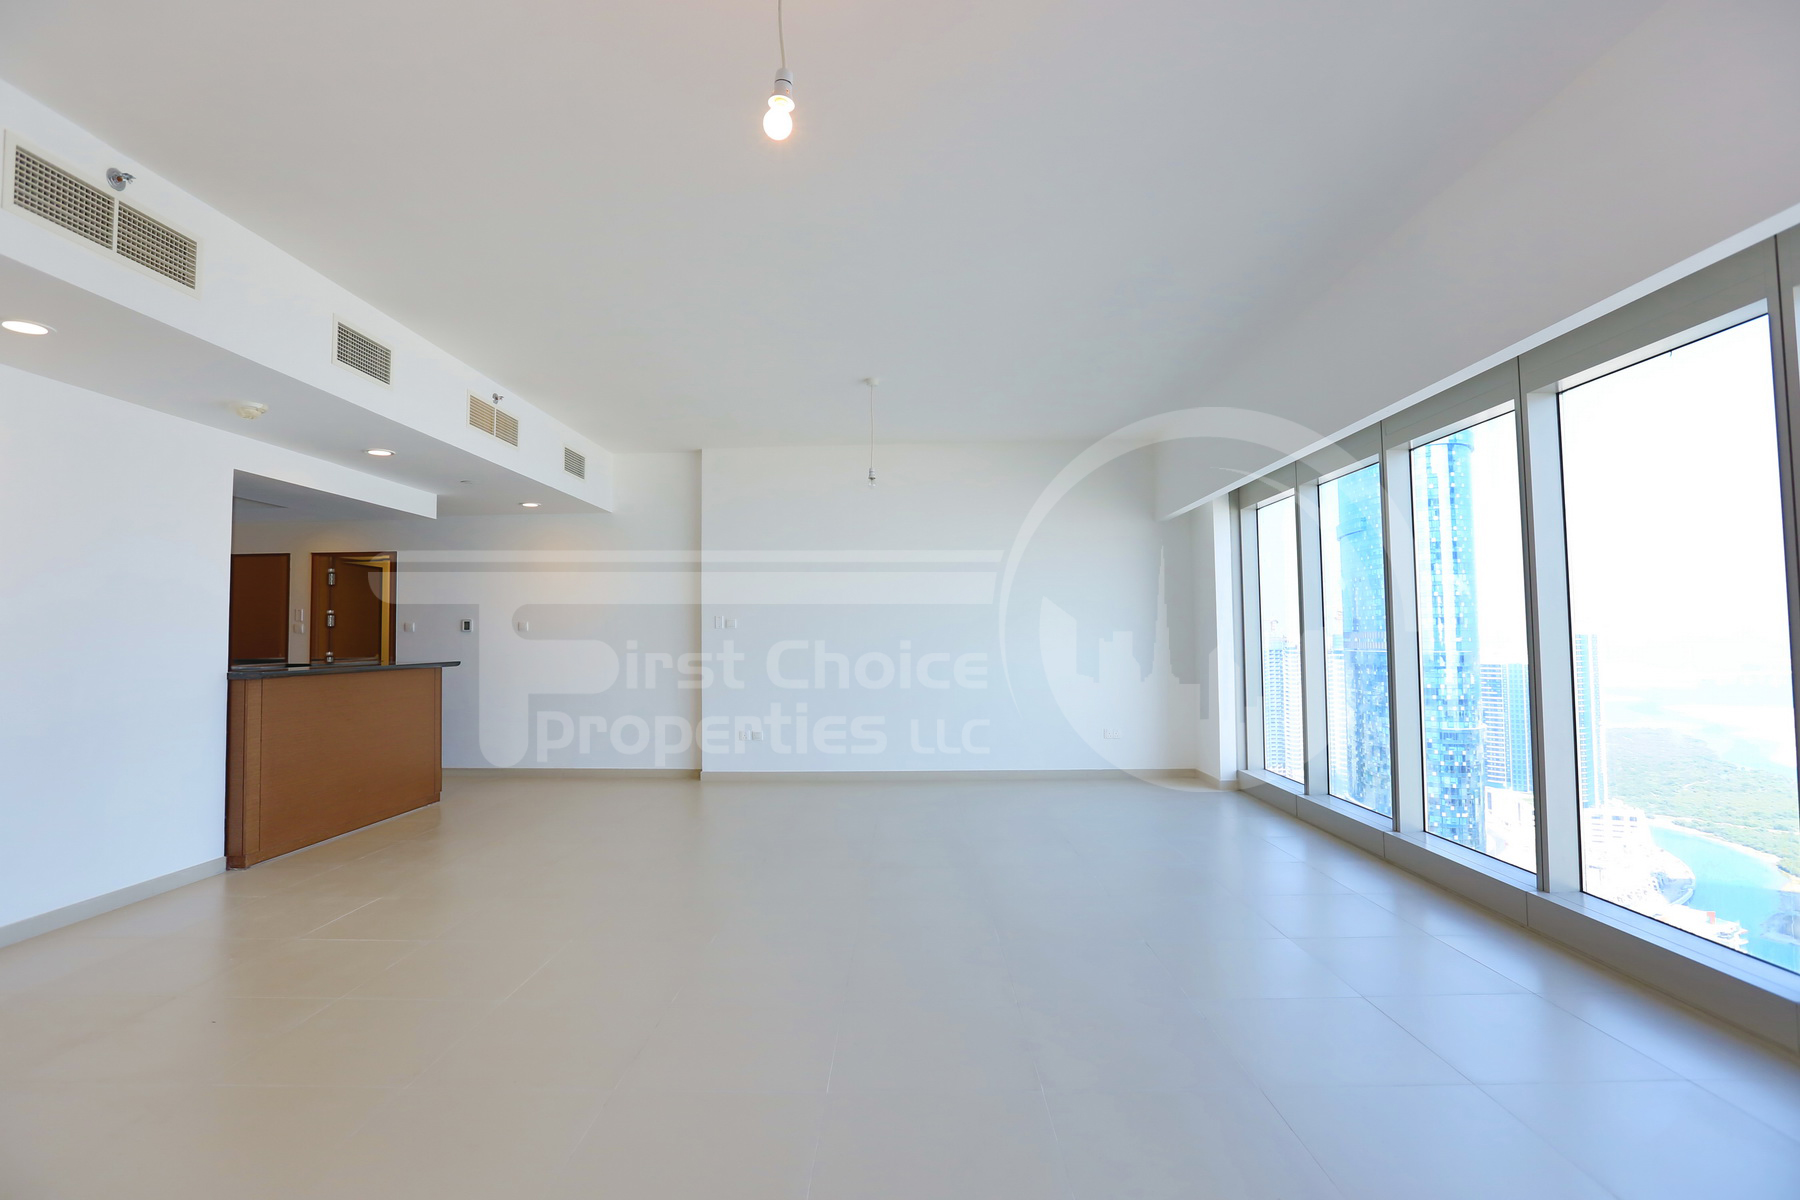 3 Bedroom Apartment - Abu Dhabi - UAE - Gate Tower - Al Reem Island (7).JPG